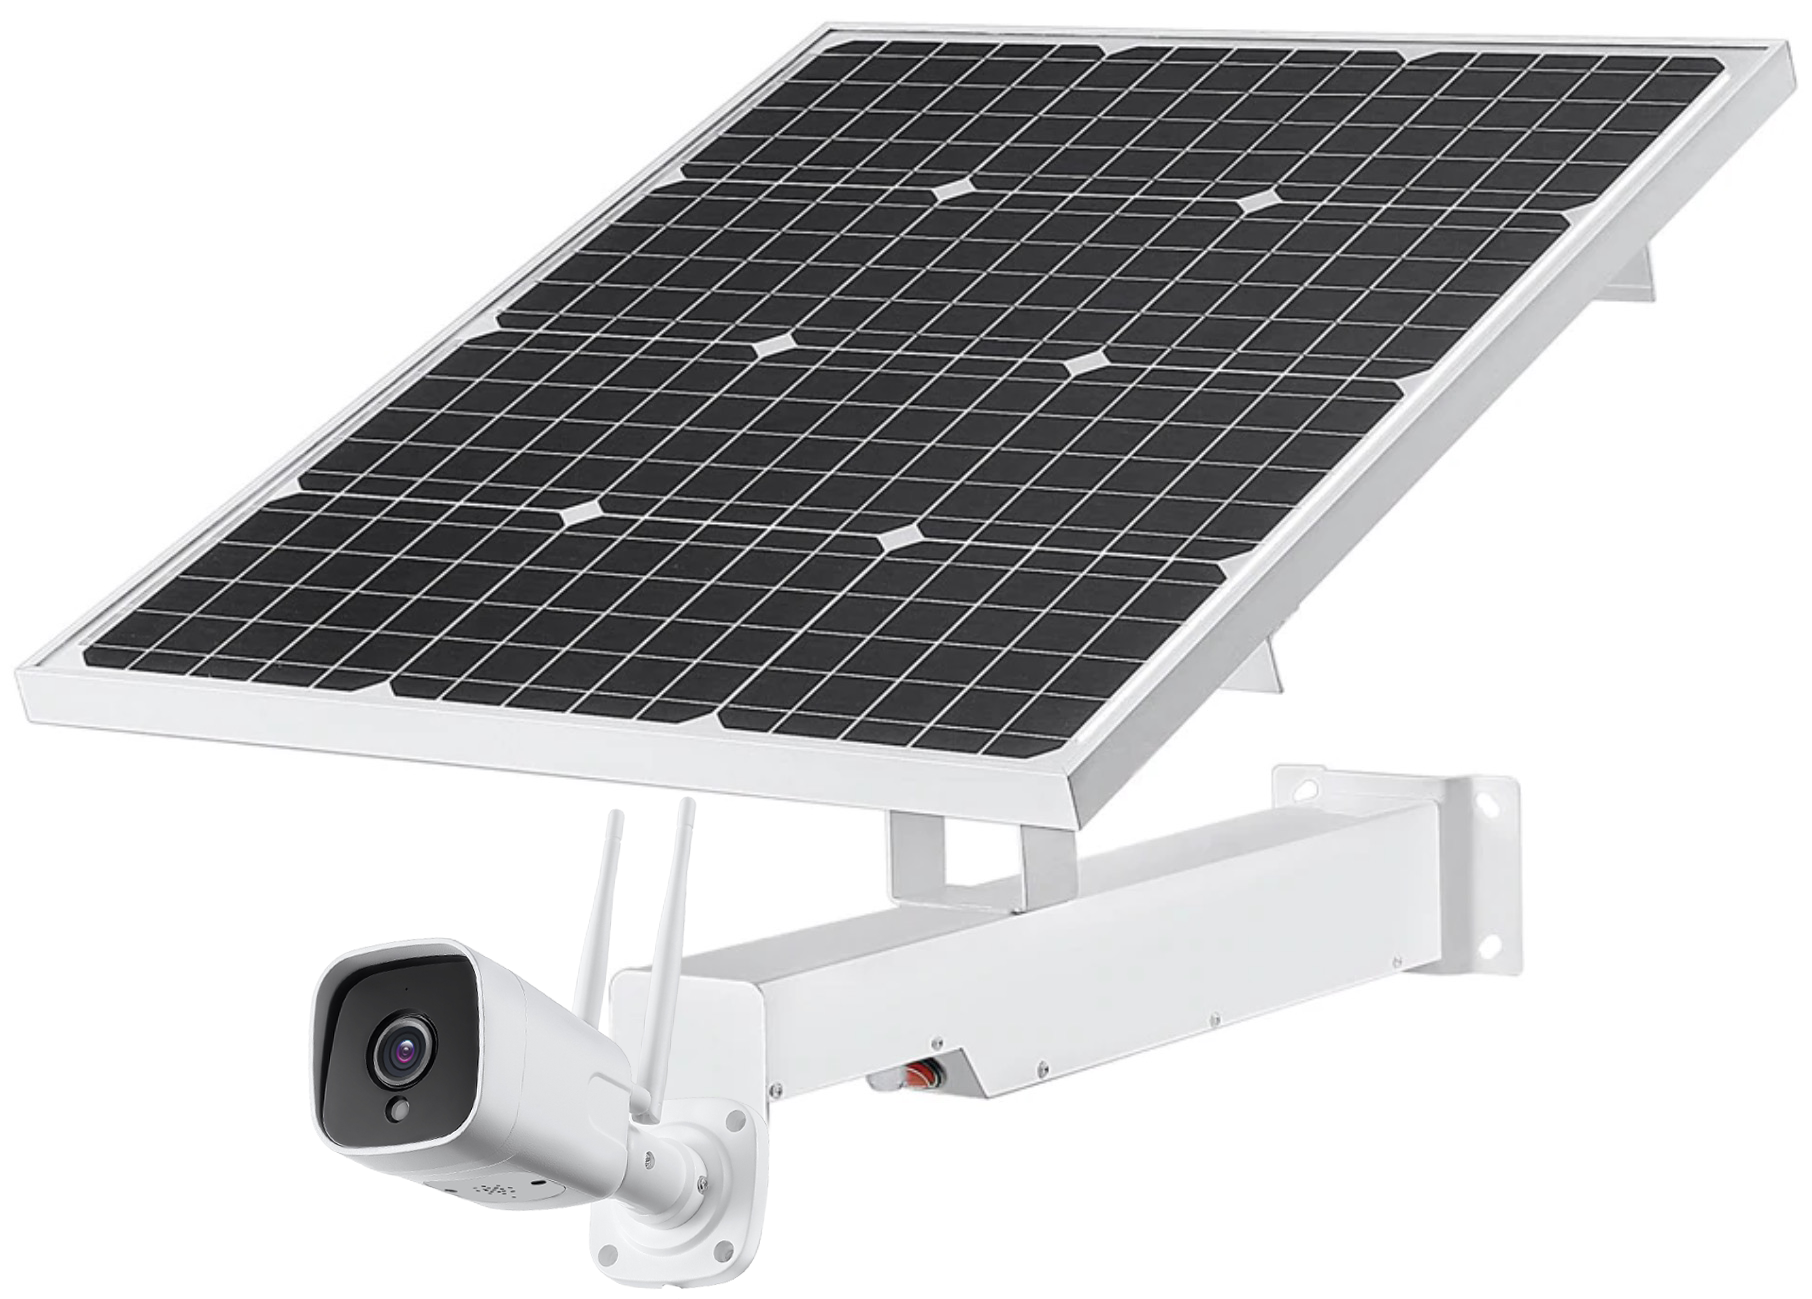 3G 4G Sim Card Outdoor 5MP Bullet Camera _ Bracket with Solar Panels & Built-in Batteries